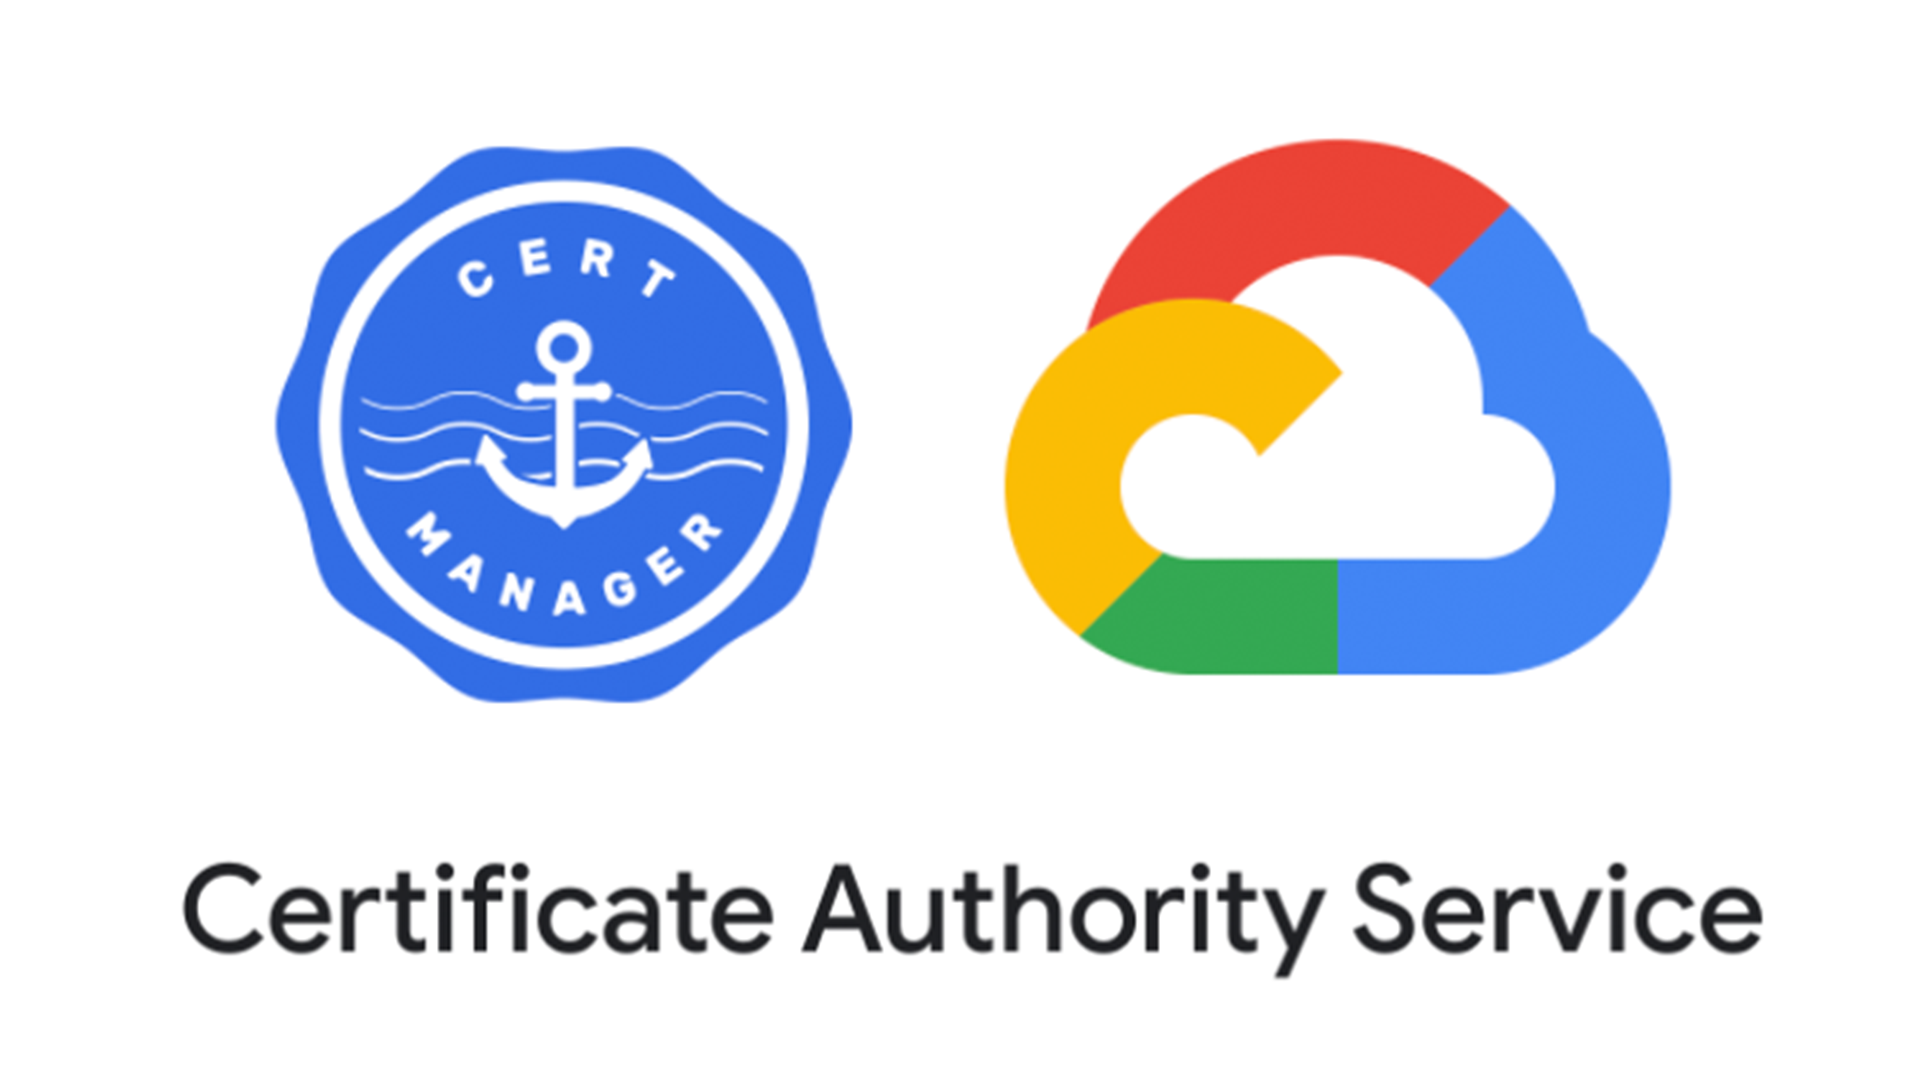 Integrating cert-manager with Google Cloud Certificate Authority Service